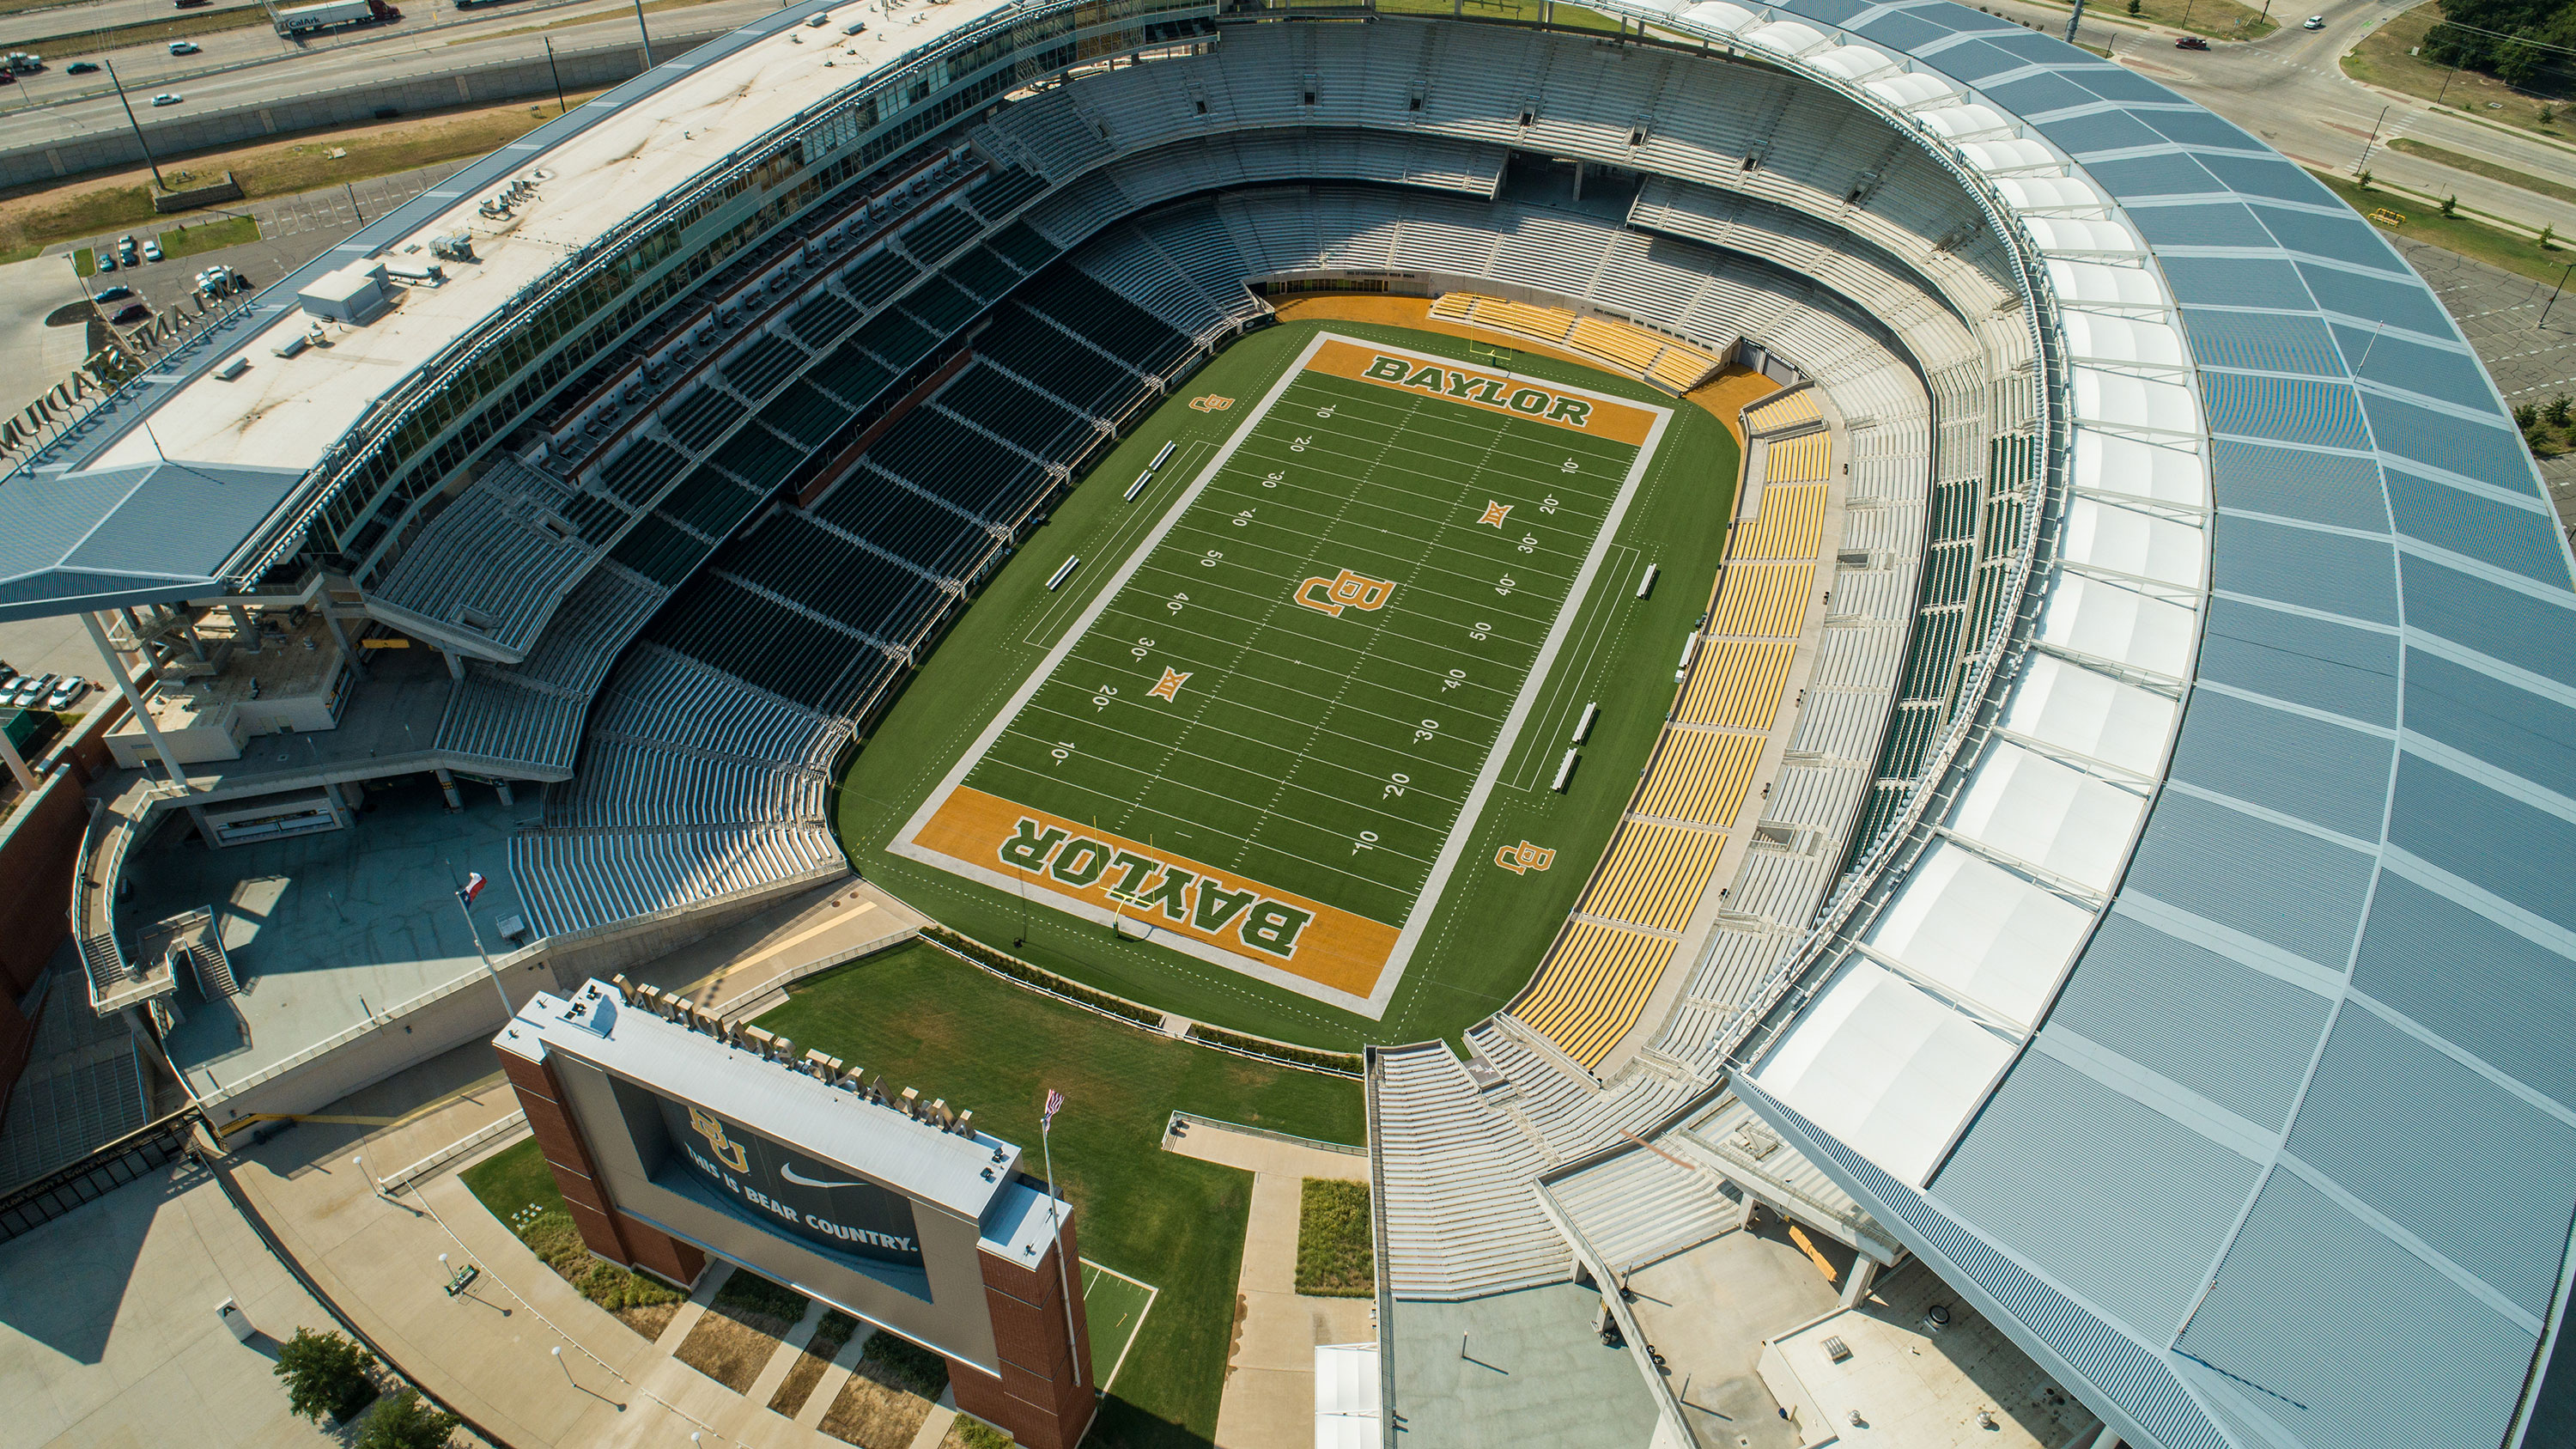 McLane Stadium at Baylor University in Waco, Texas